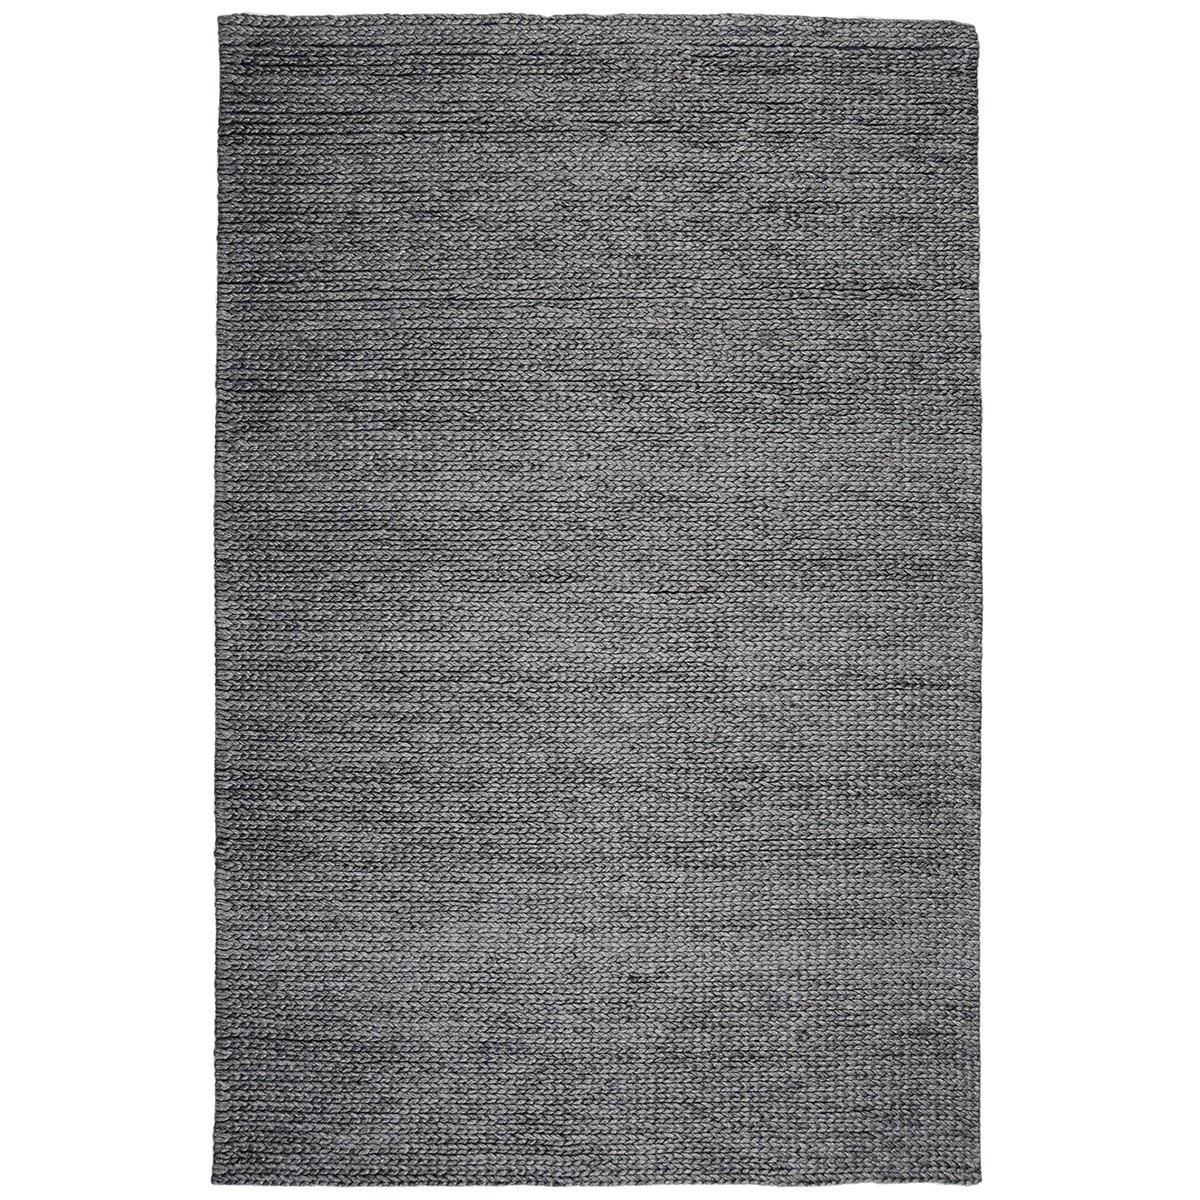 Vail Handwoven Plush Wool Rug, 230x160cm, Highway